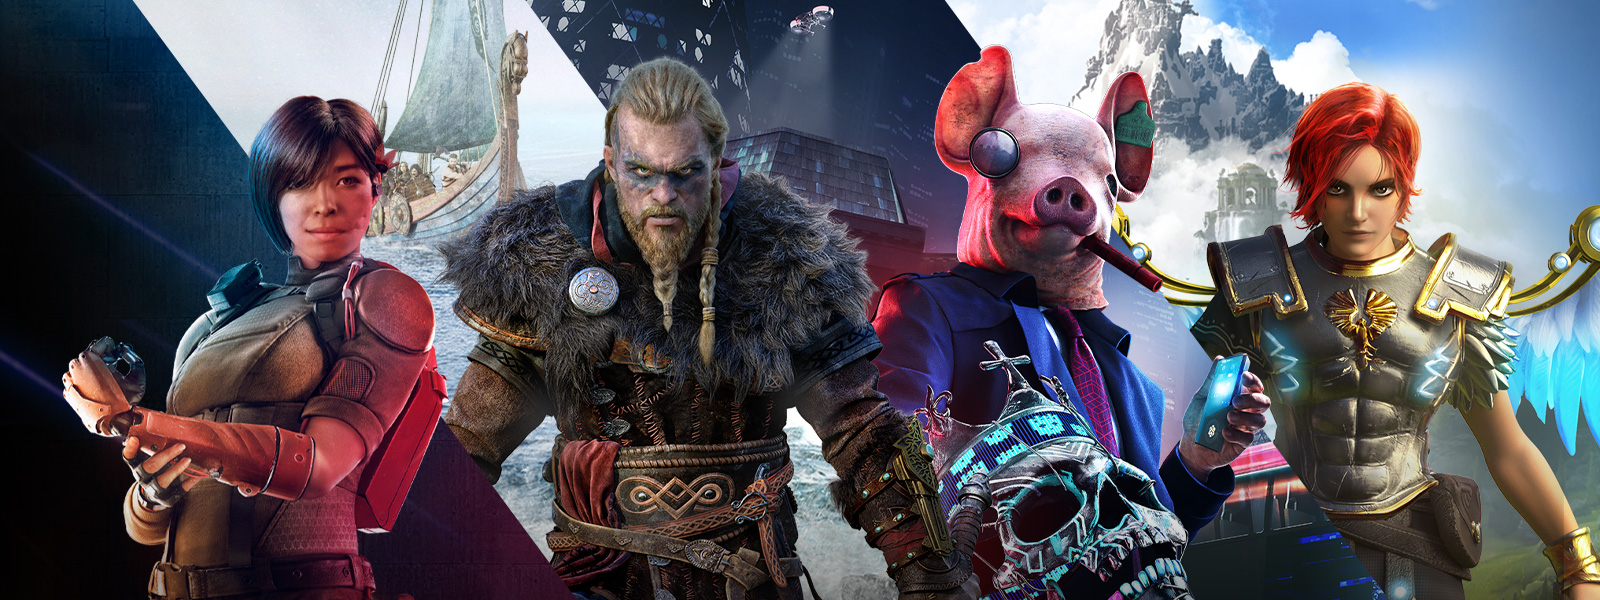 Characters from games that are part of the Ubisoft Forward sale, including Assassin's Creed Valhalla and Watch Dogs Legion.